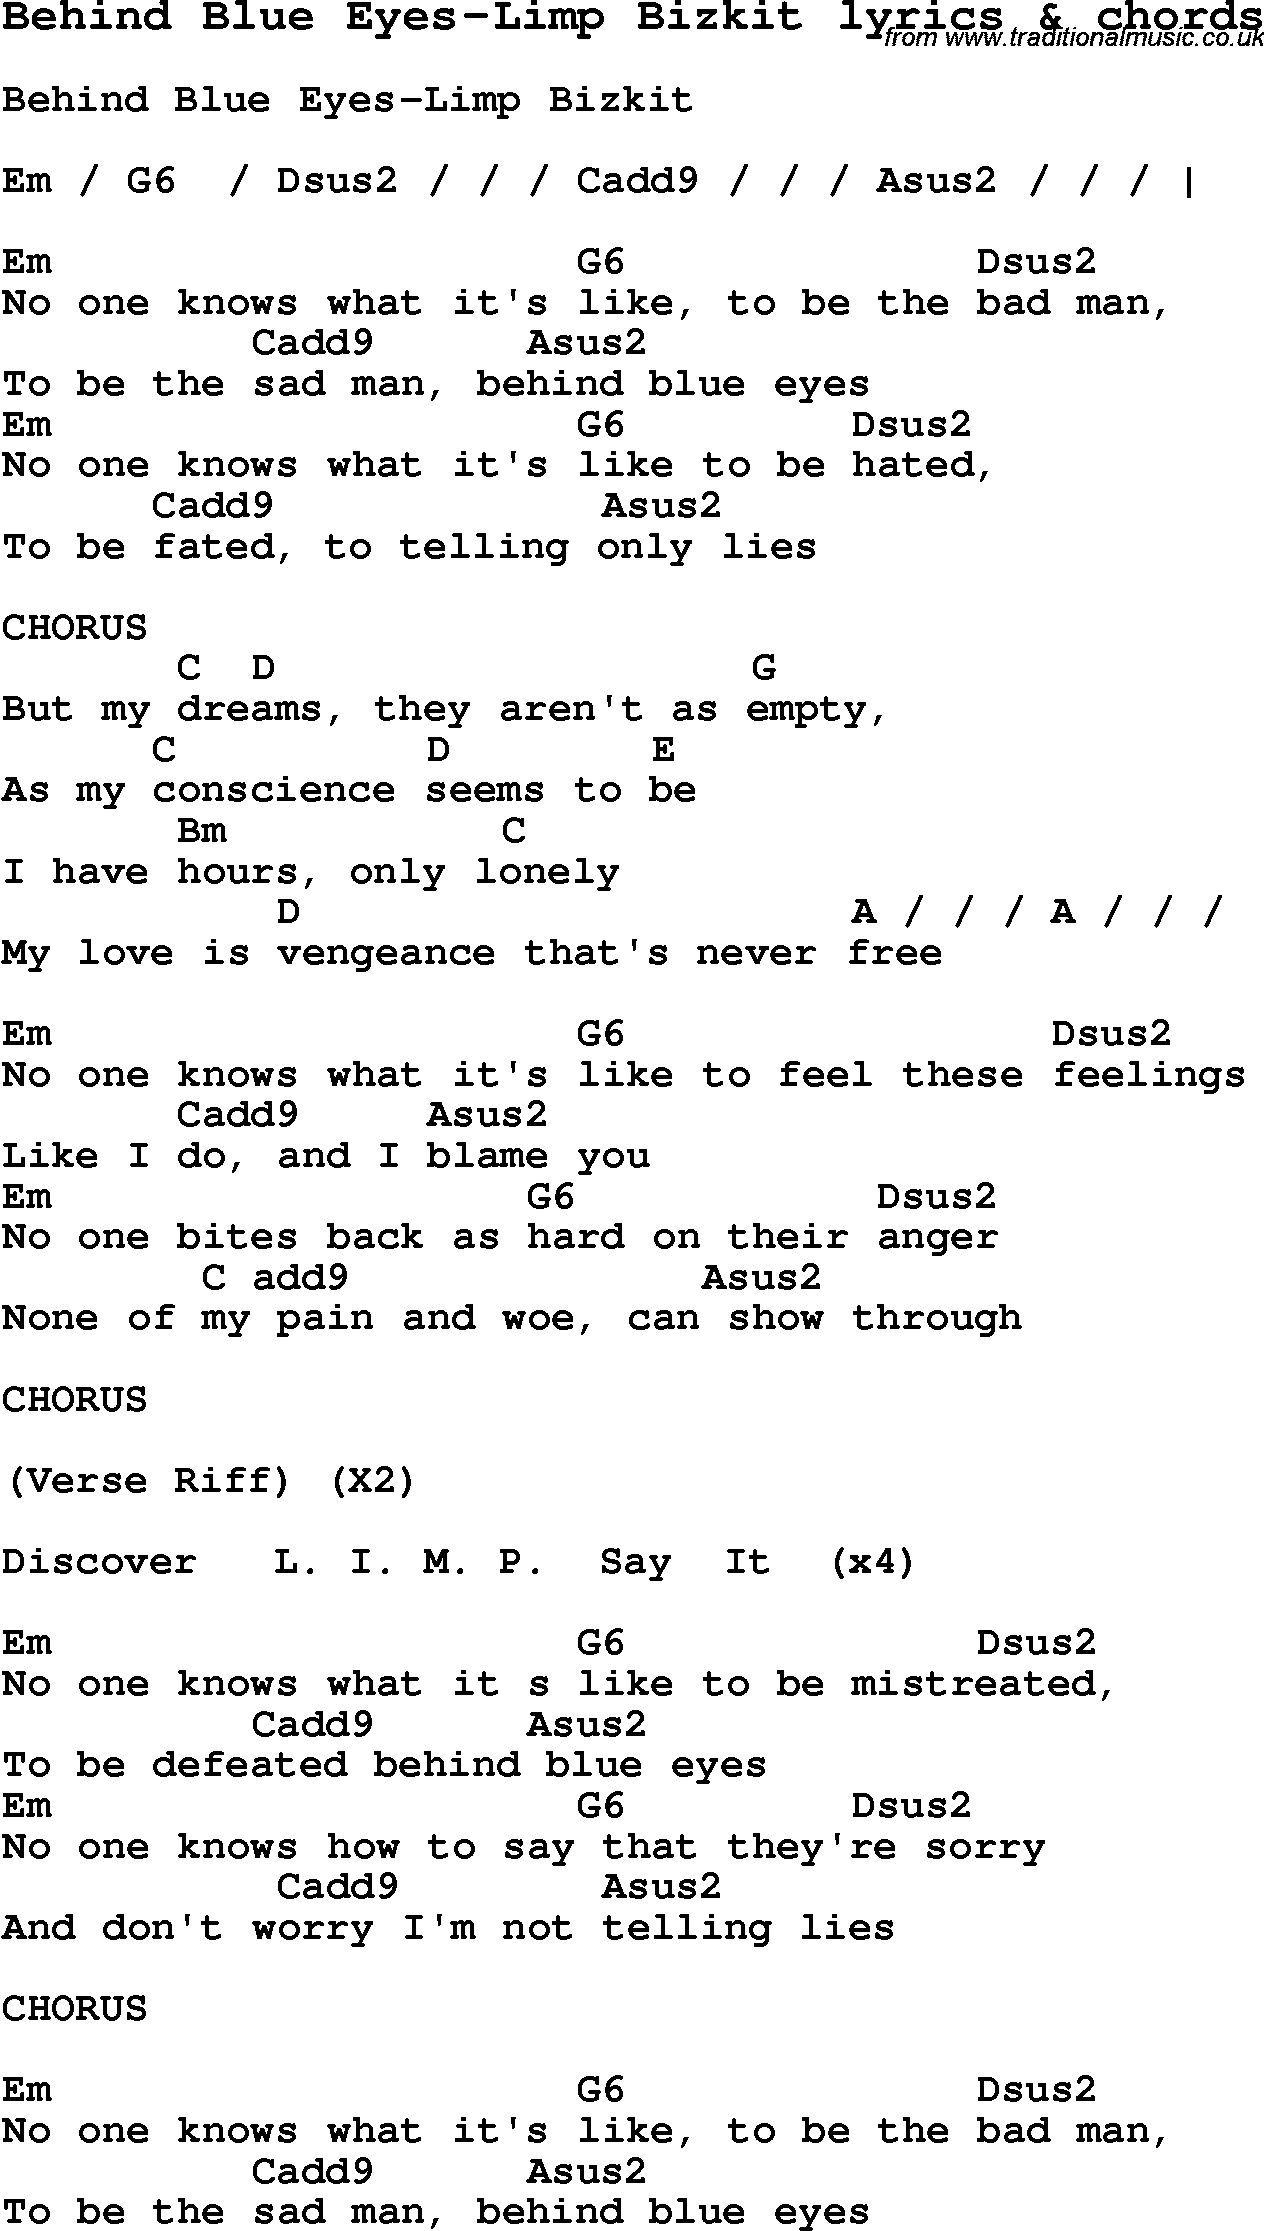 Love Song Lyrics For Behind Blue Eyes Limp Bizkit With Chords For